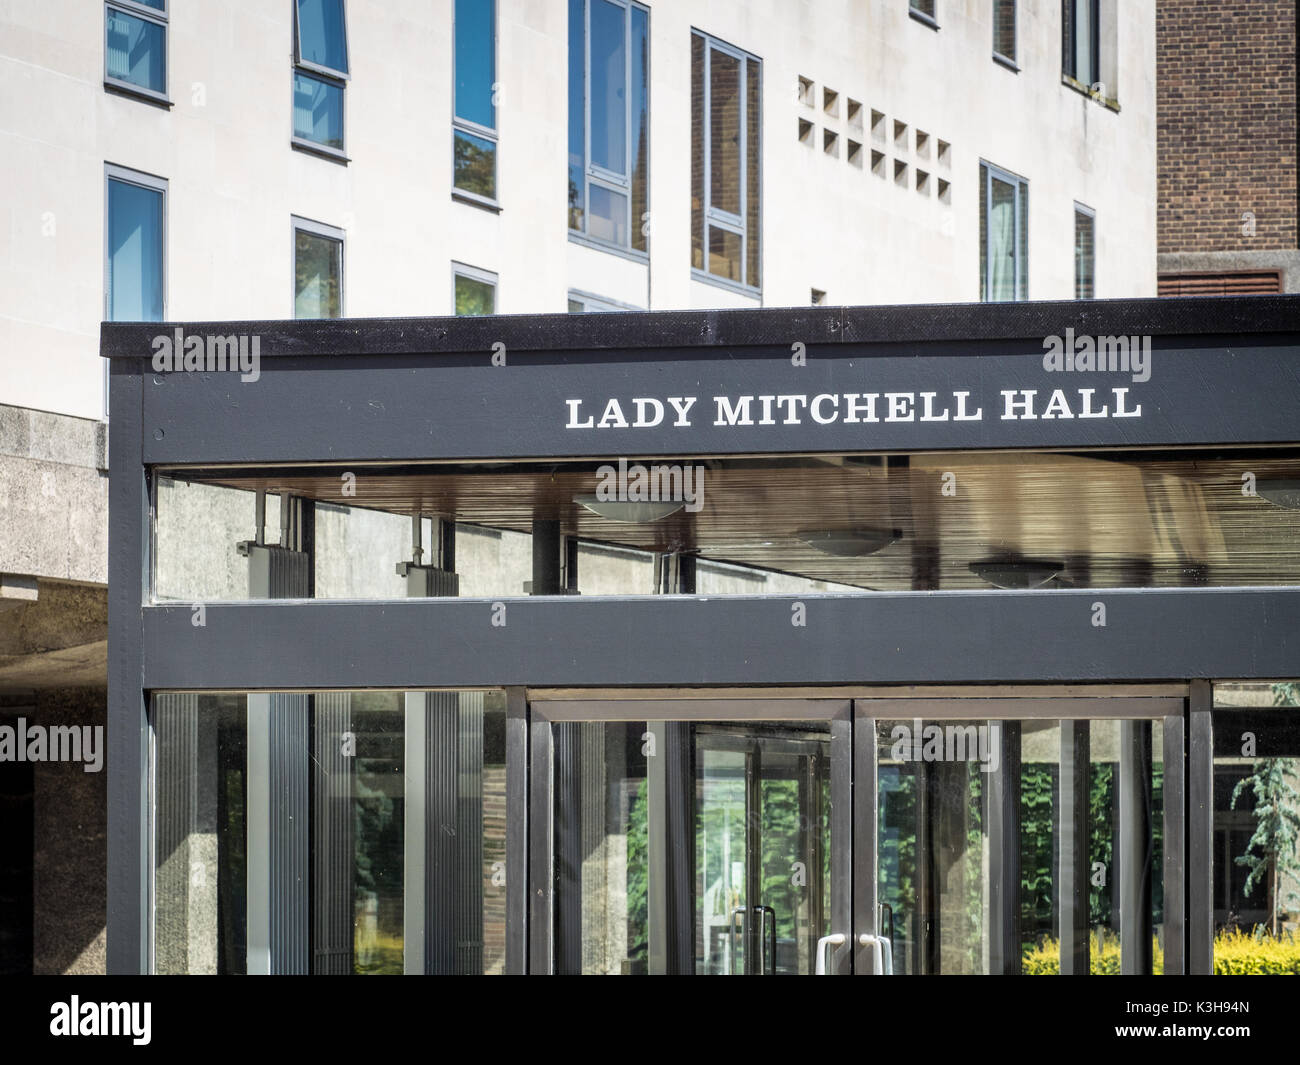 Lady Mitchell Hall University of Cambridge - a large lecture theatre on the Sidgwick Site of the University. - Stock Image